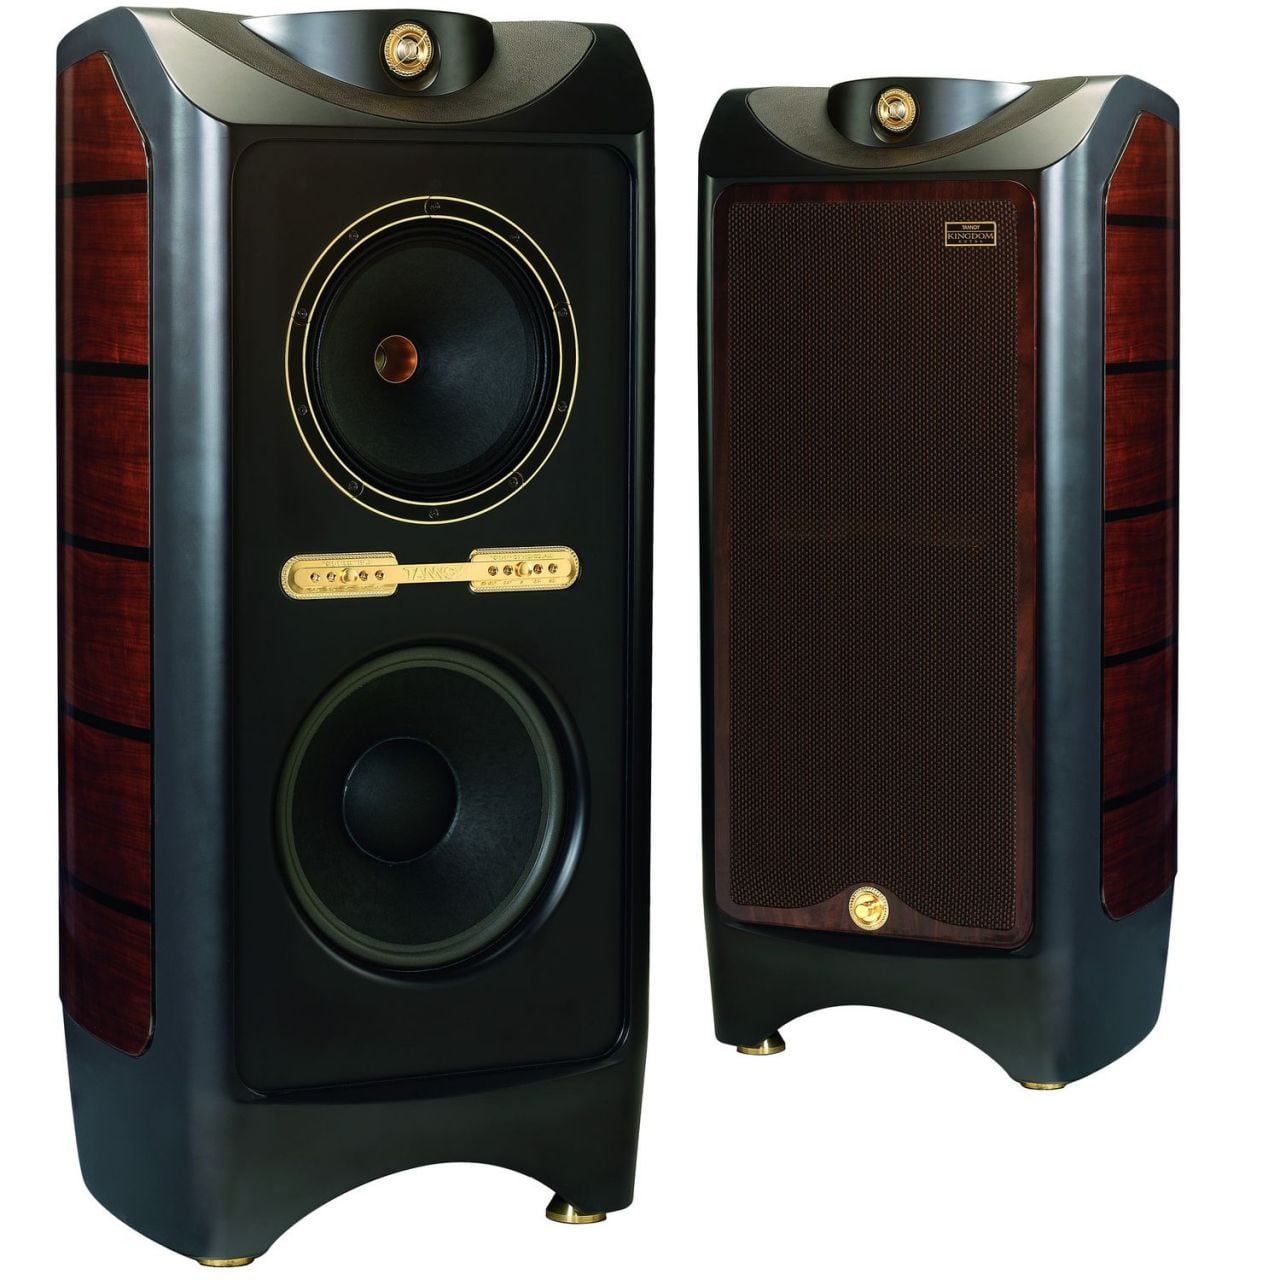 Tannoy Kingdom Royal hangfal